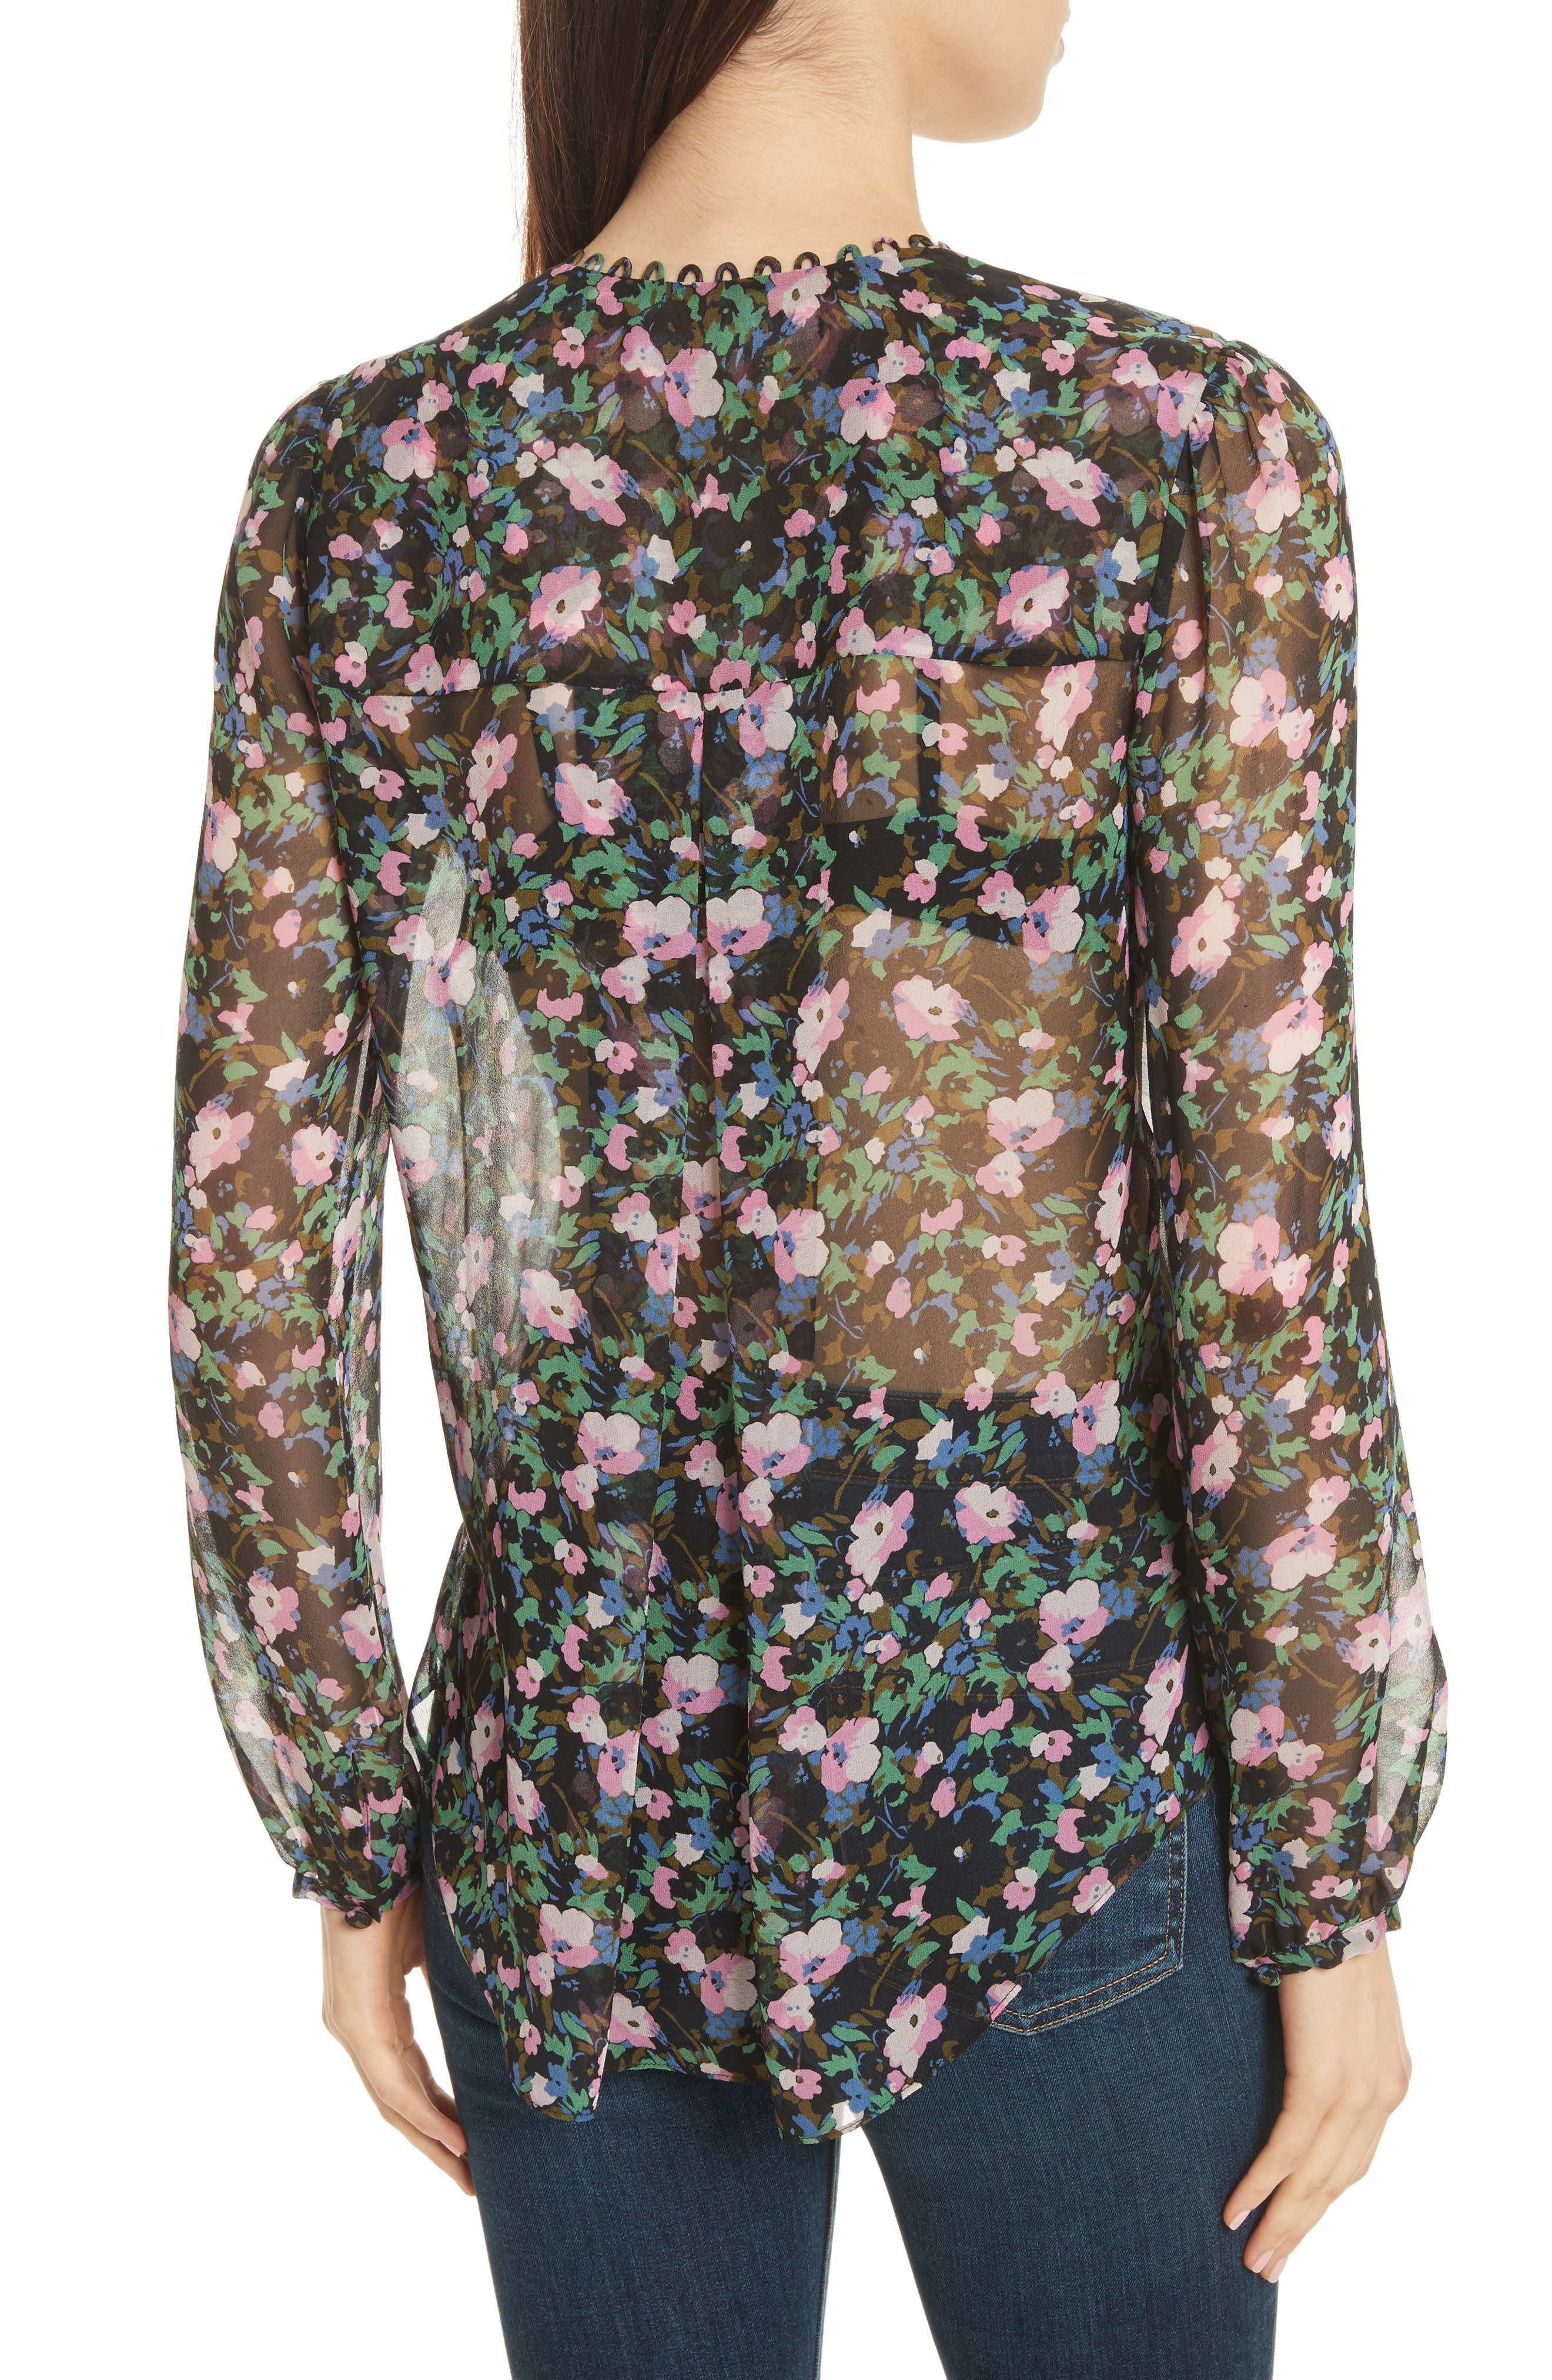 Lowell Floral Silk Blouse,                             Alternate thumbnail 3, color,                             Navy/ Green/ Pink